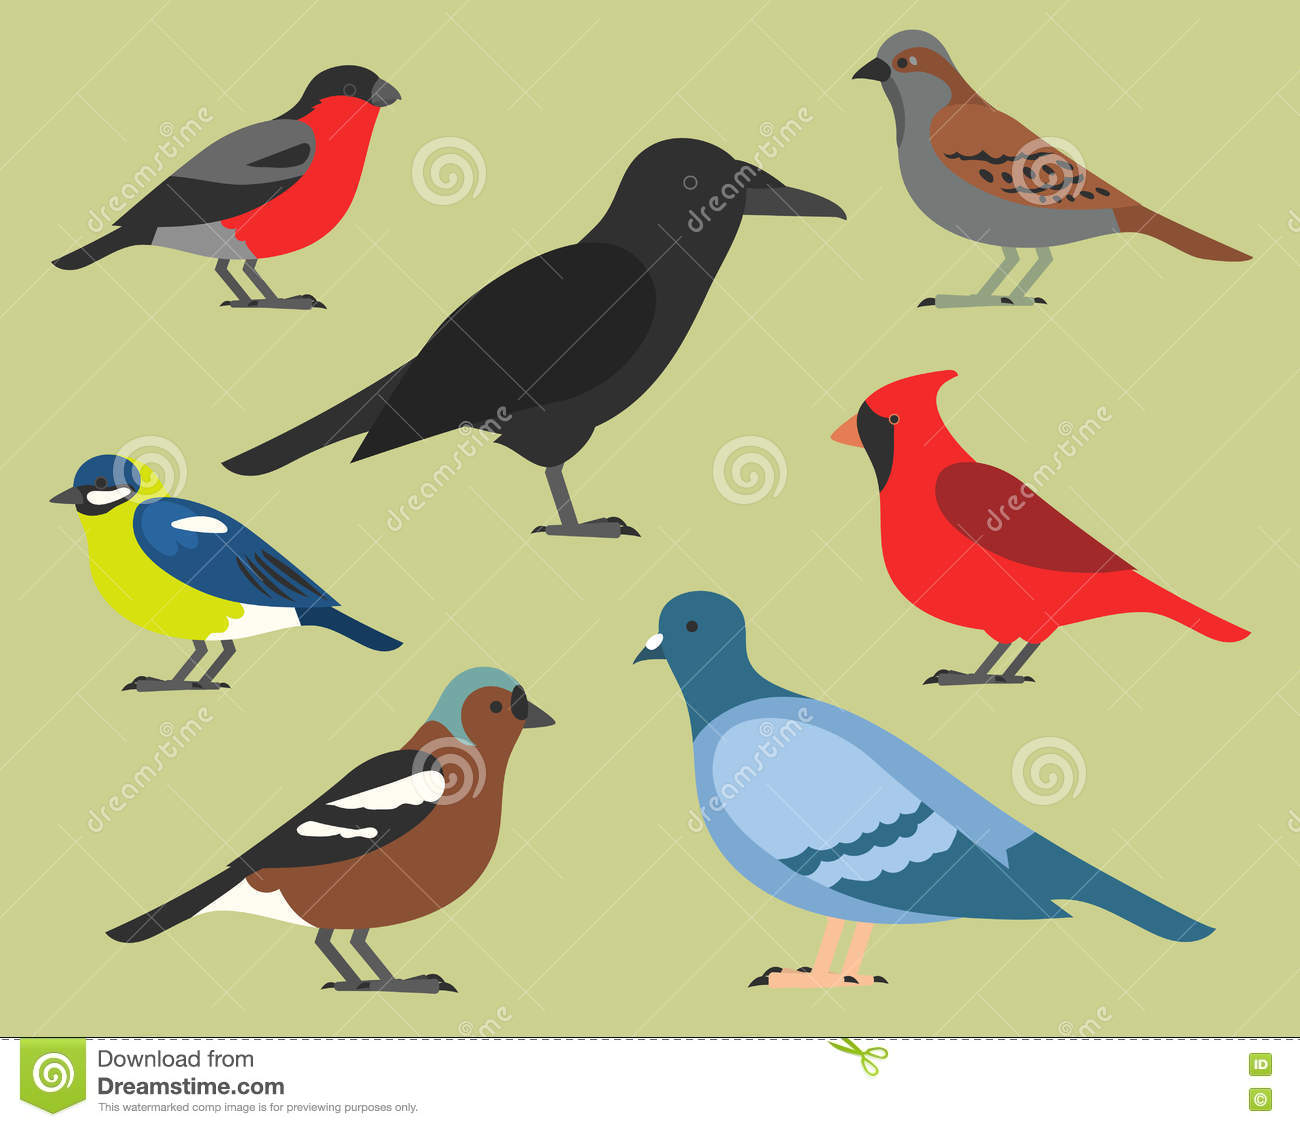 chaffinch cartoons illustrations vector stock images 101 pictures to download from. Black Bedroom Furniture Sets. Home Design Ideas